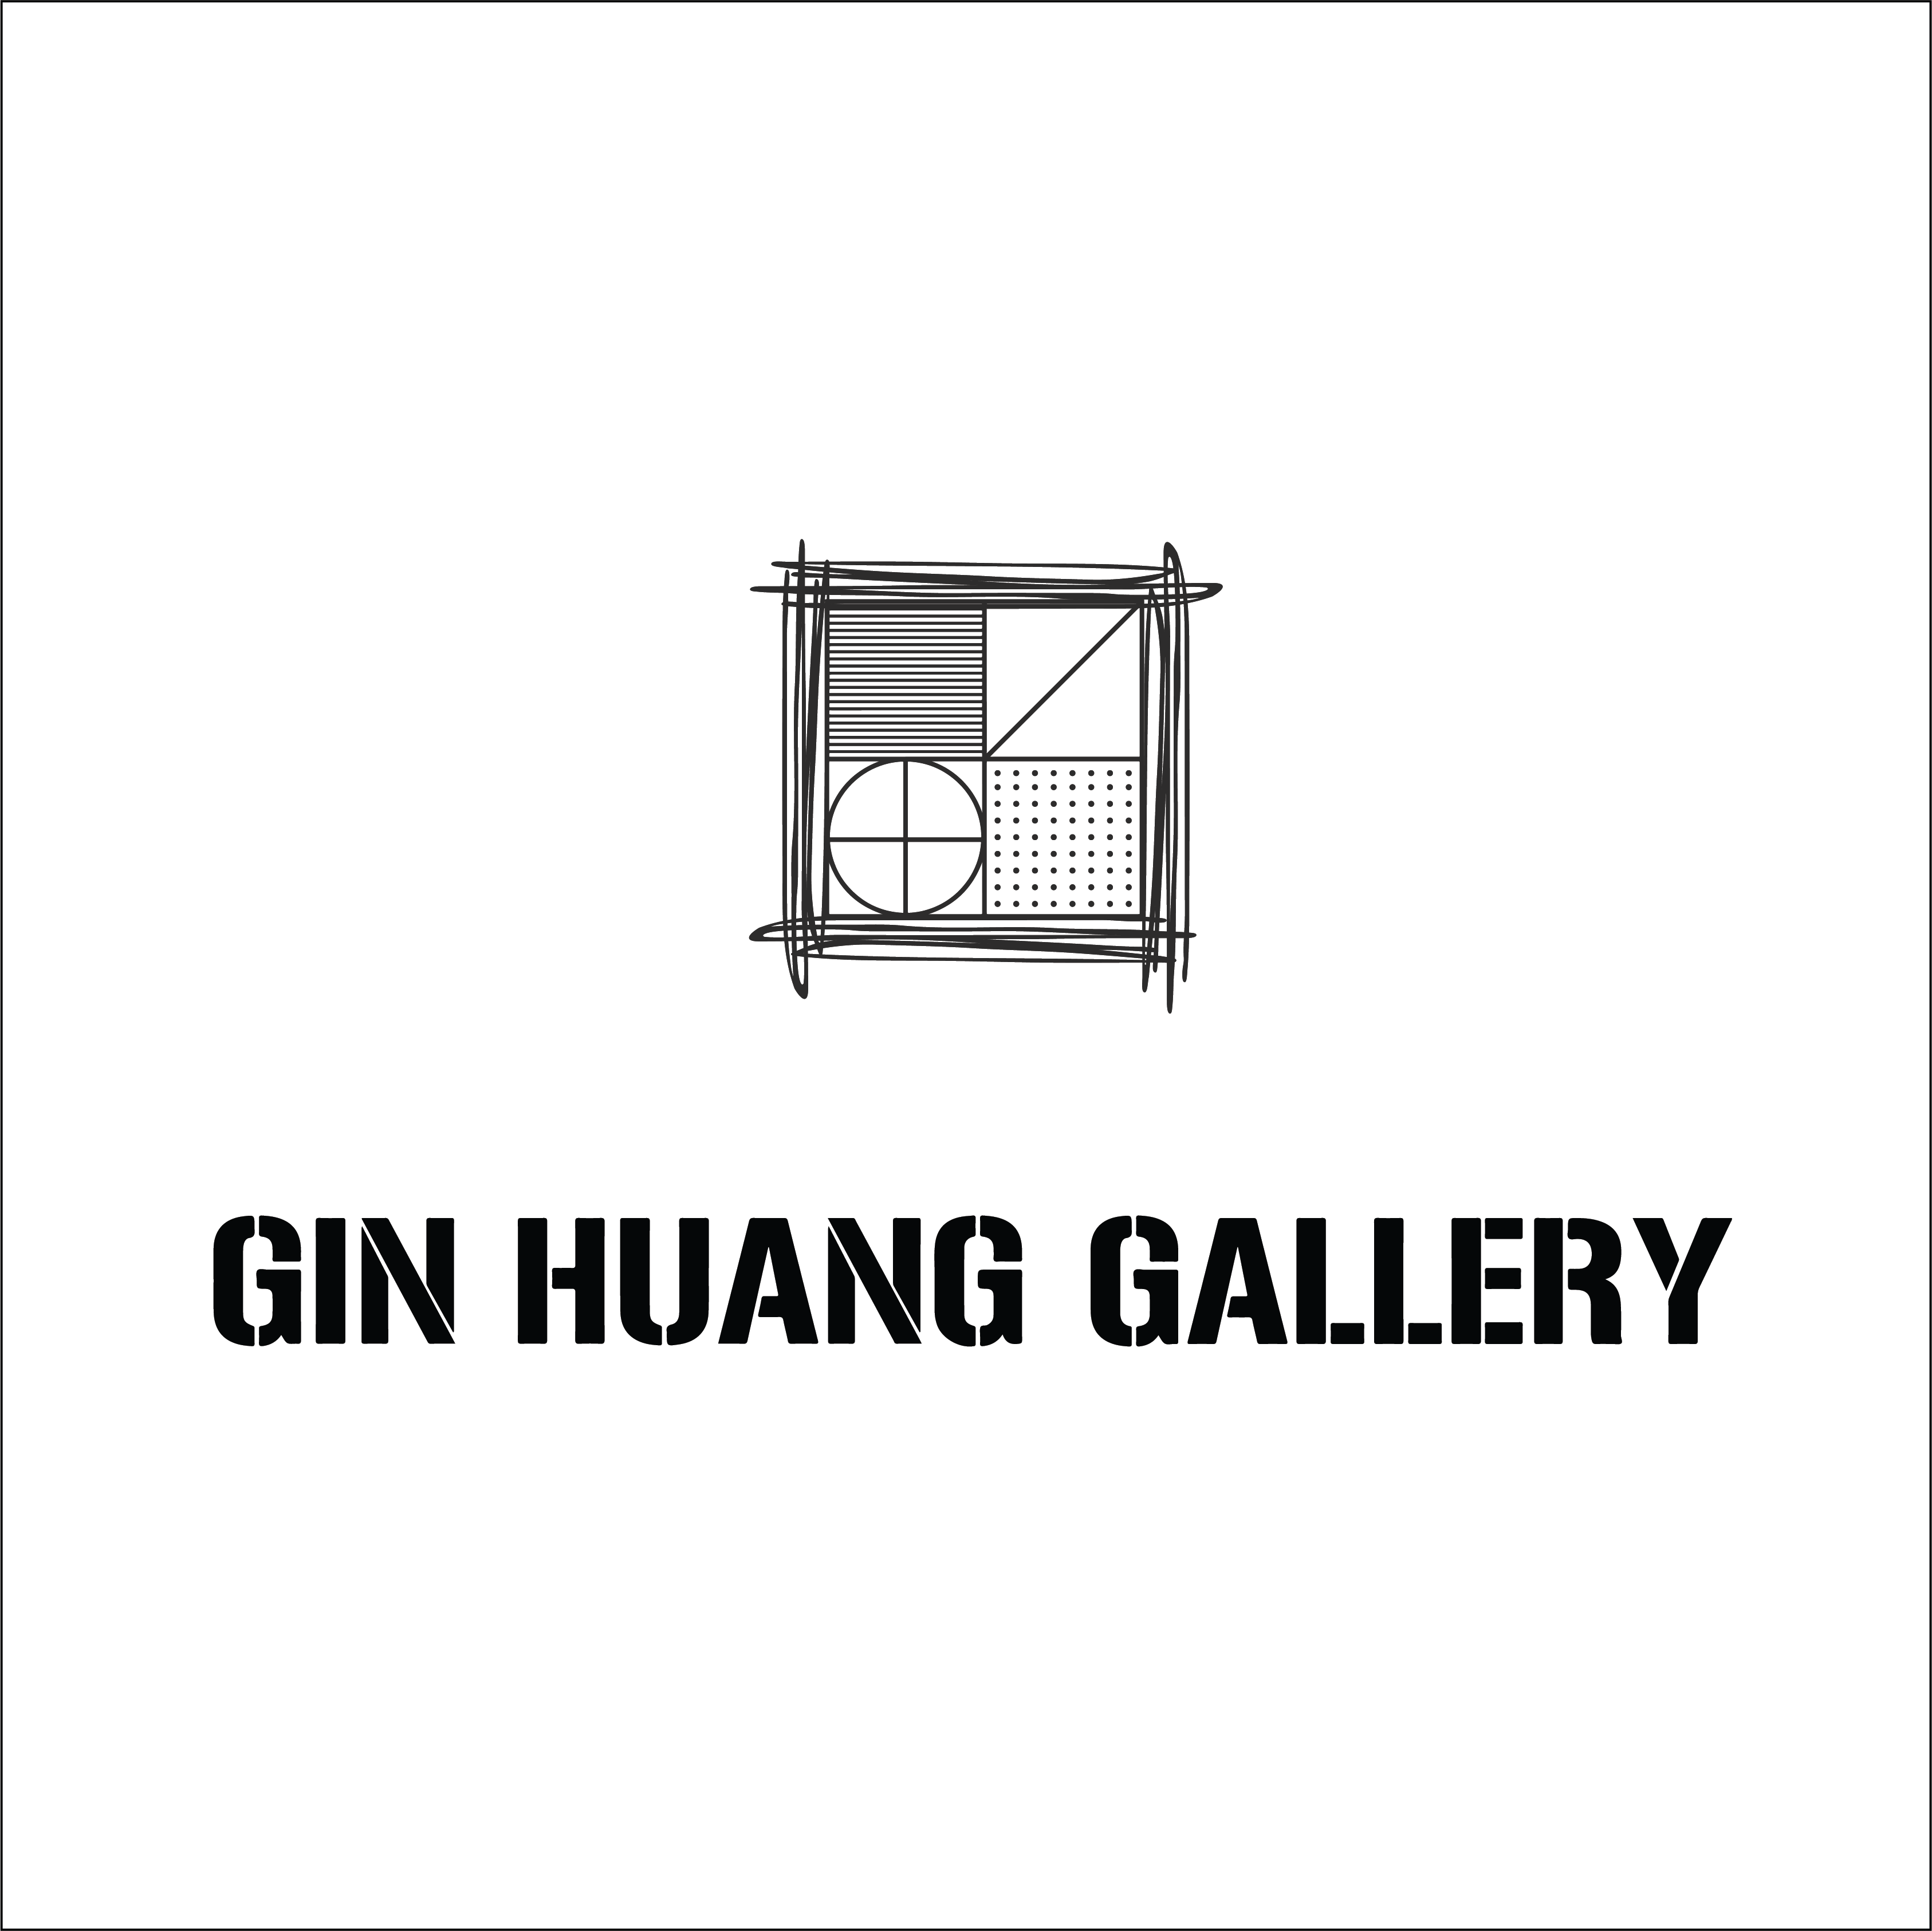 Gin Huang Gallery